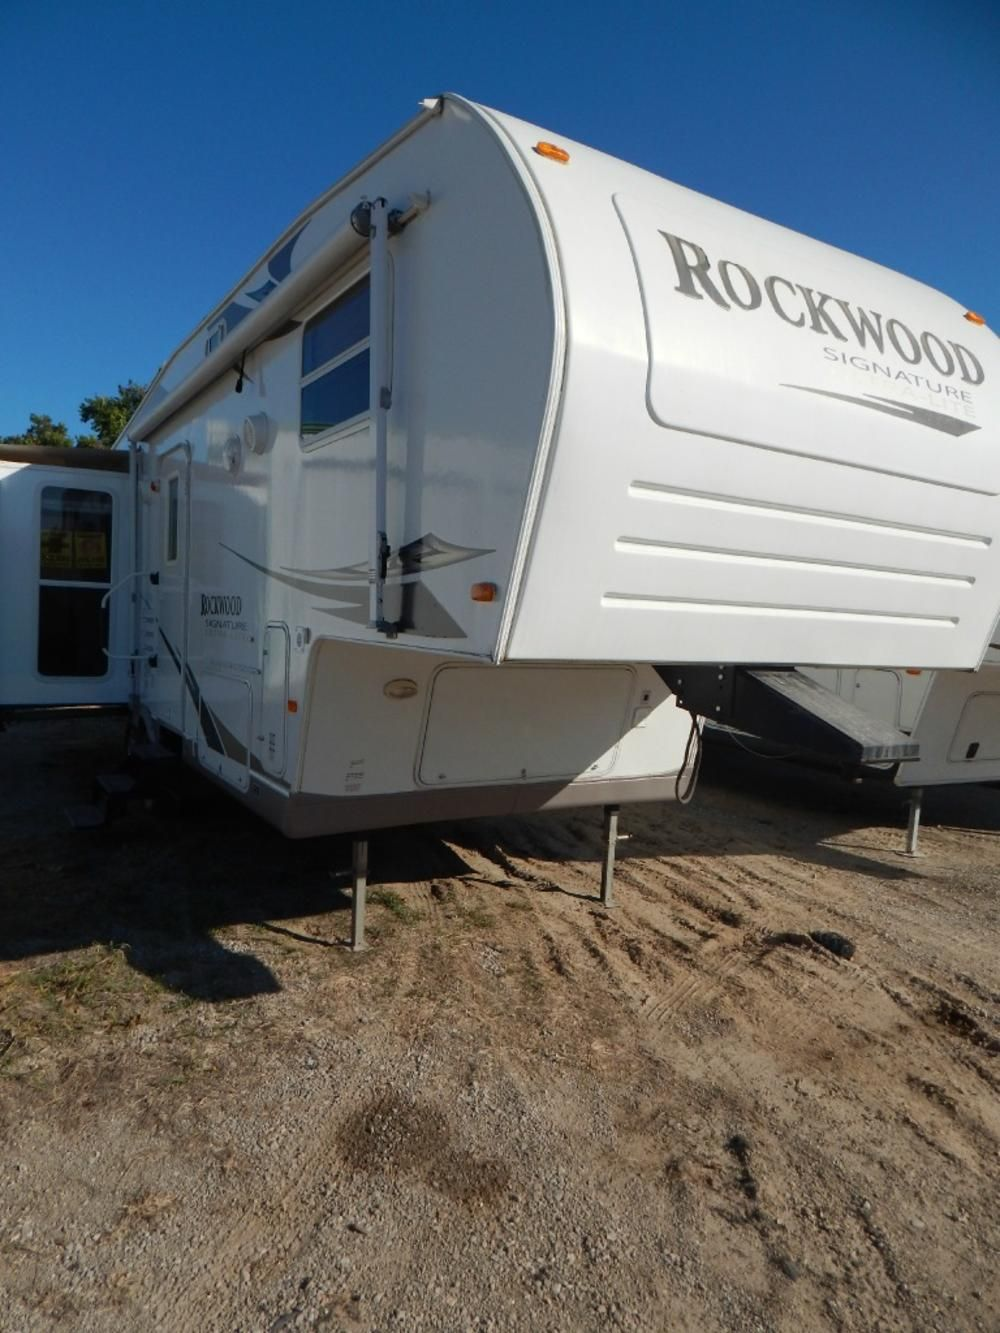 Used 2008 Forest River Rockwood Fifth Wheel Trailer For